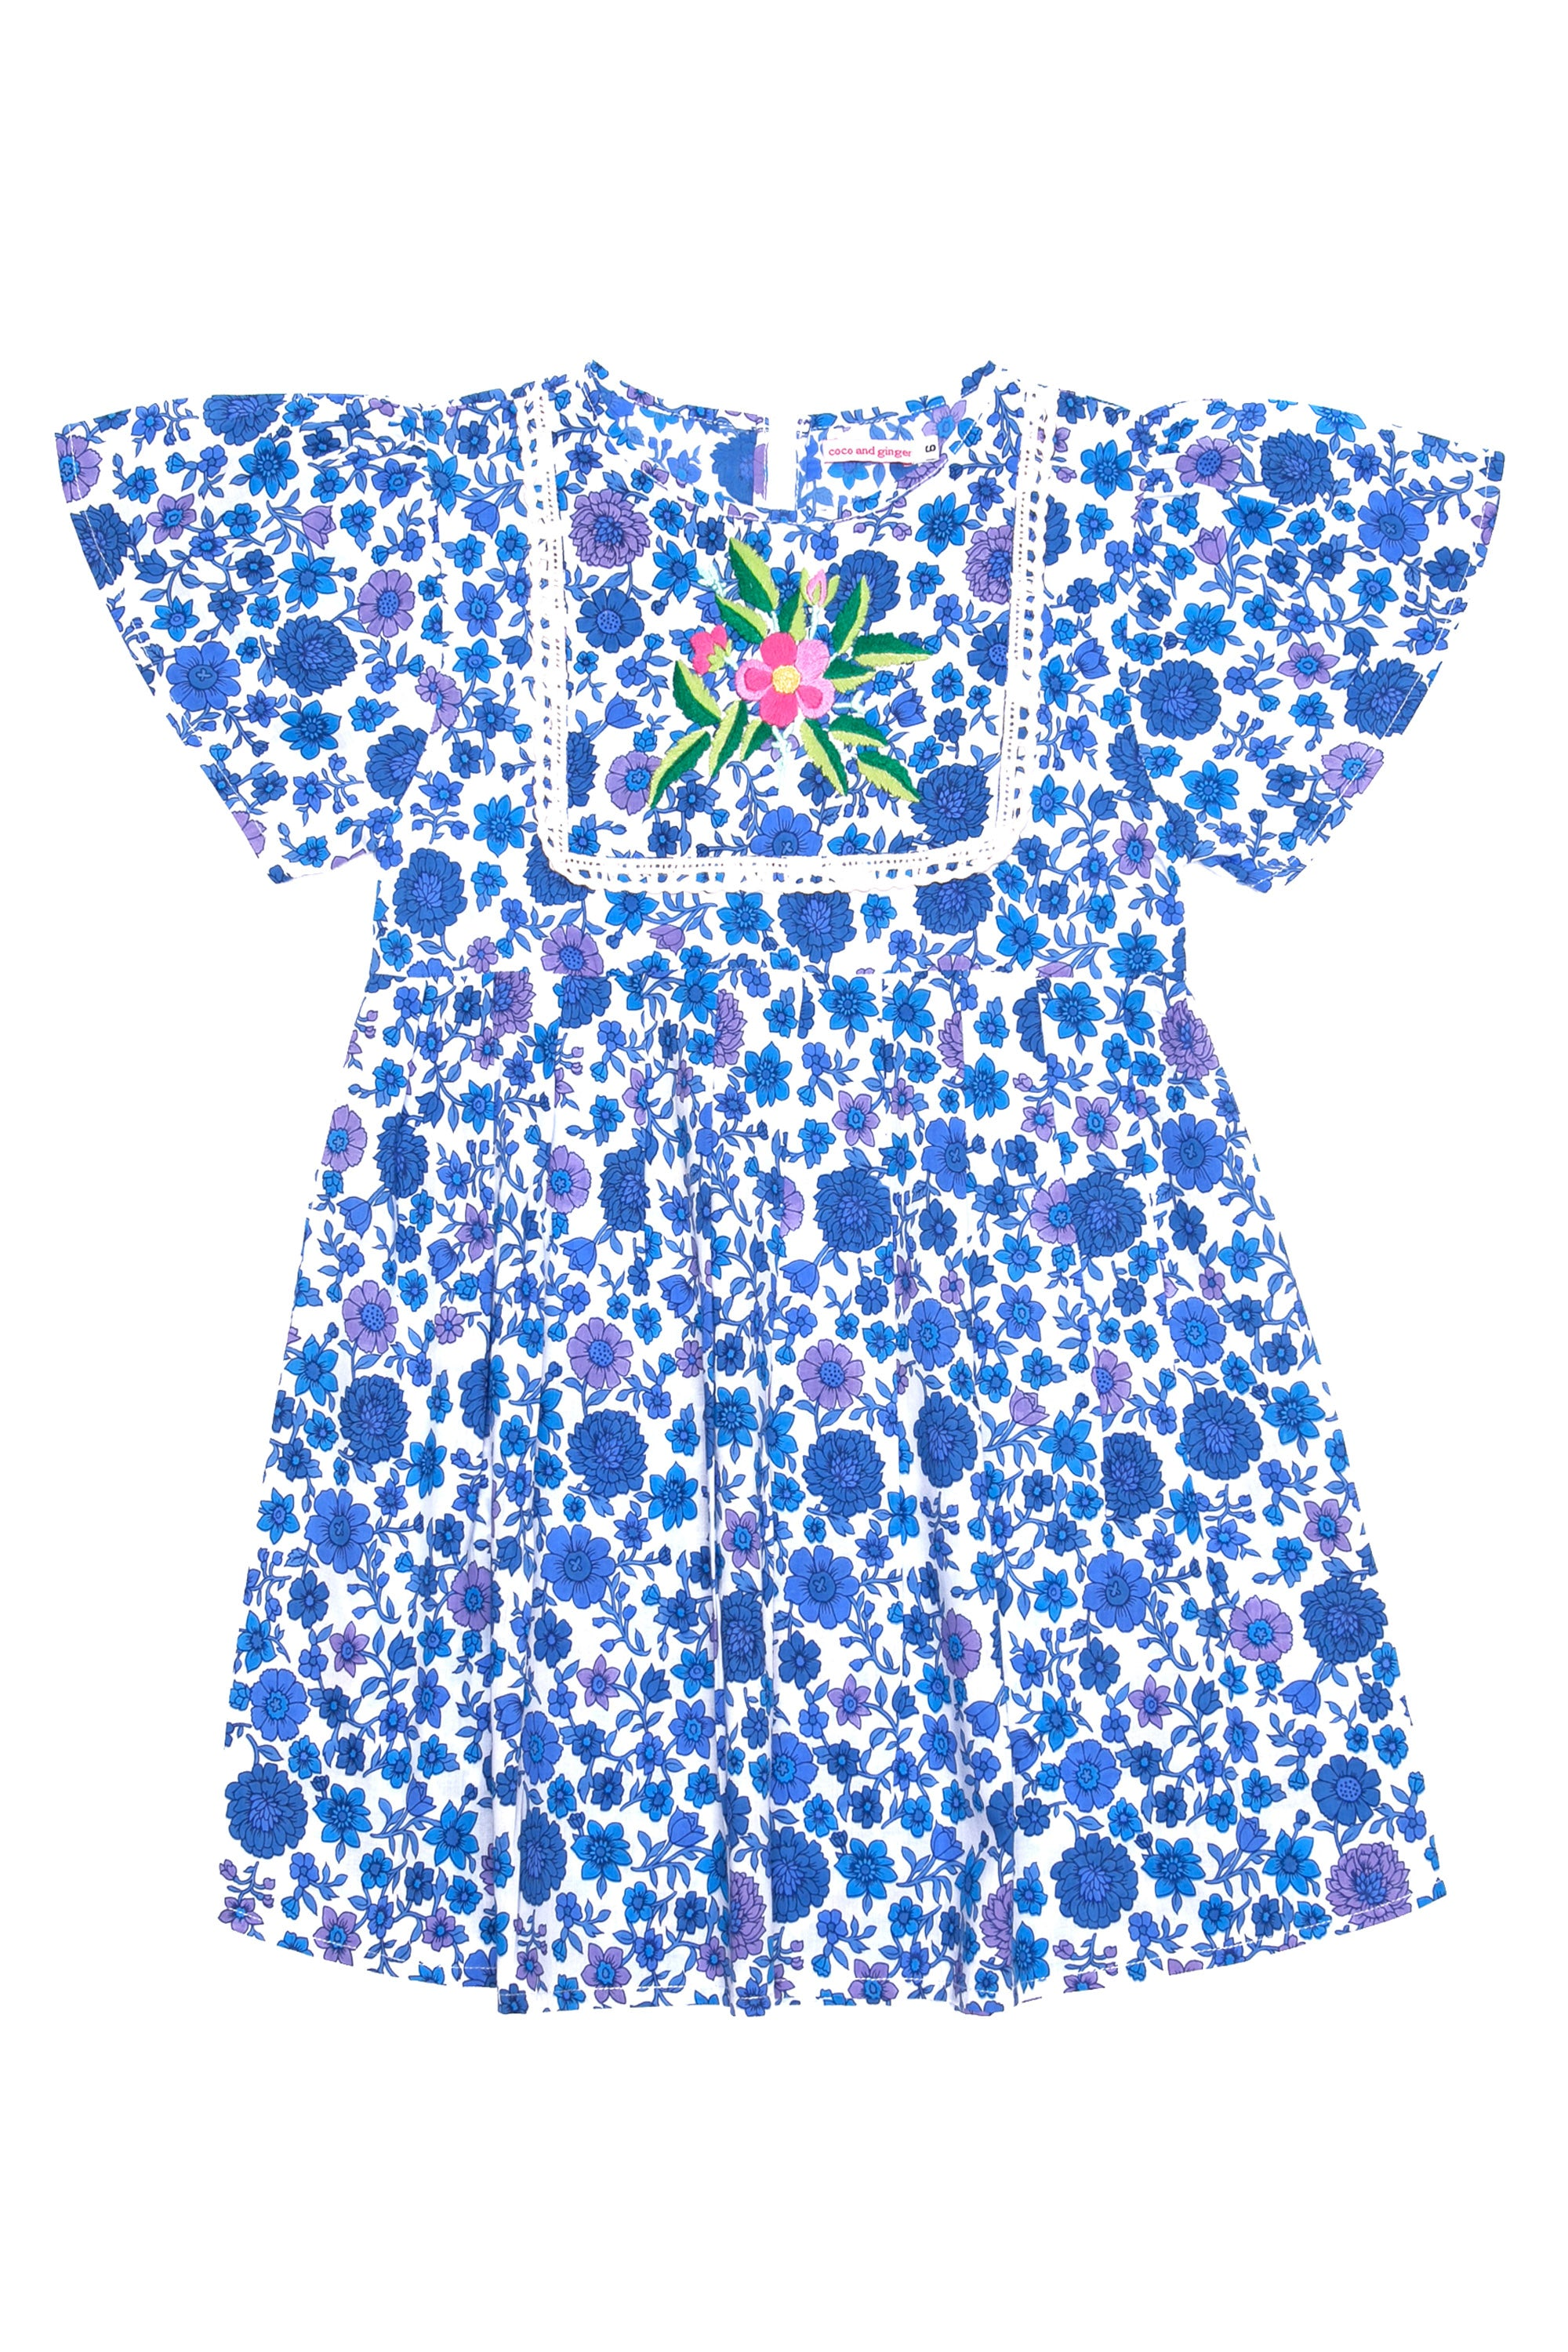 Venus Dress Indigo Dahlia with Embroidery